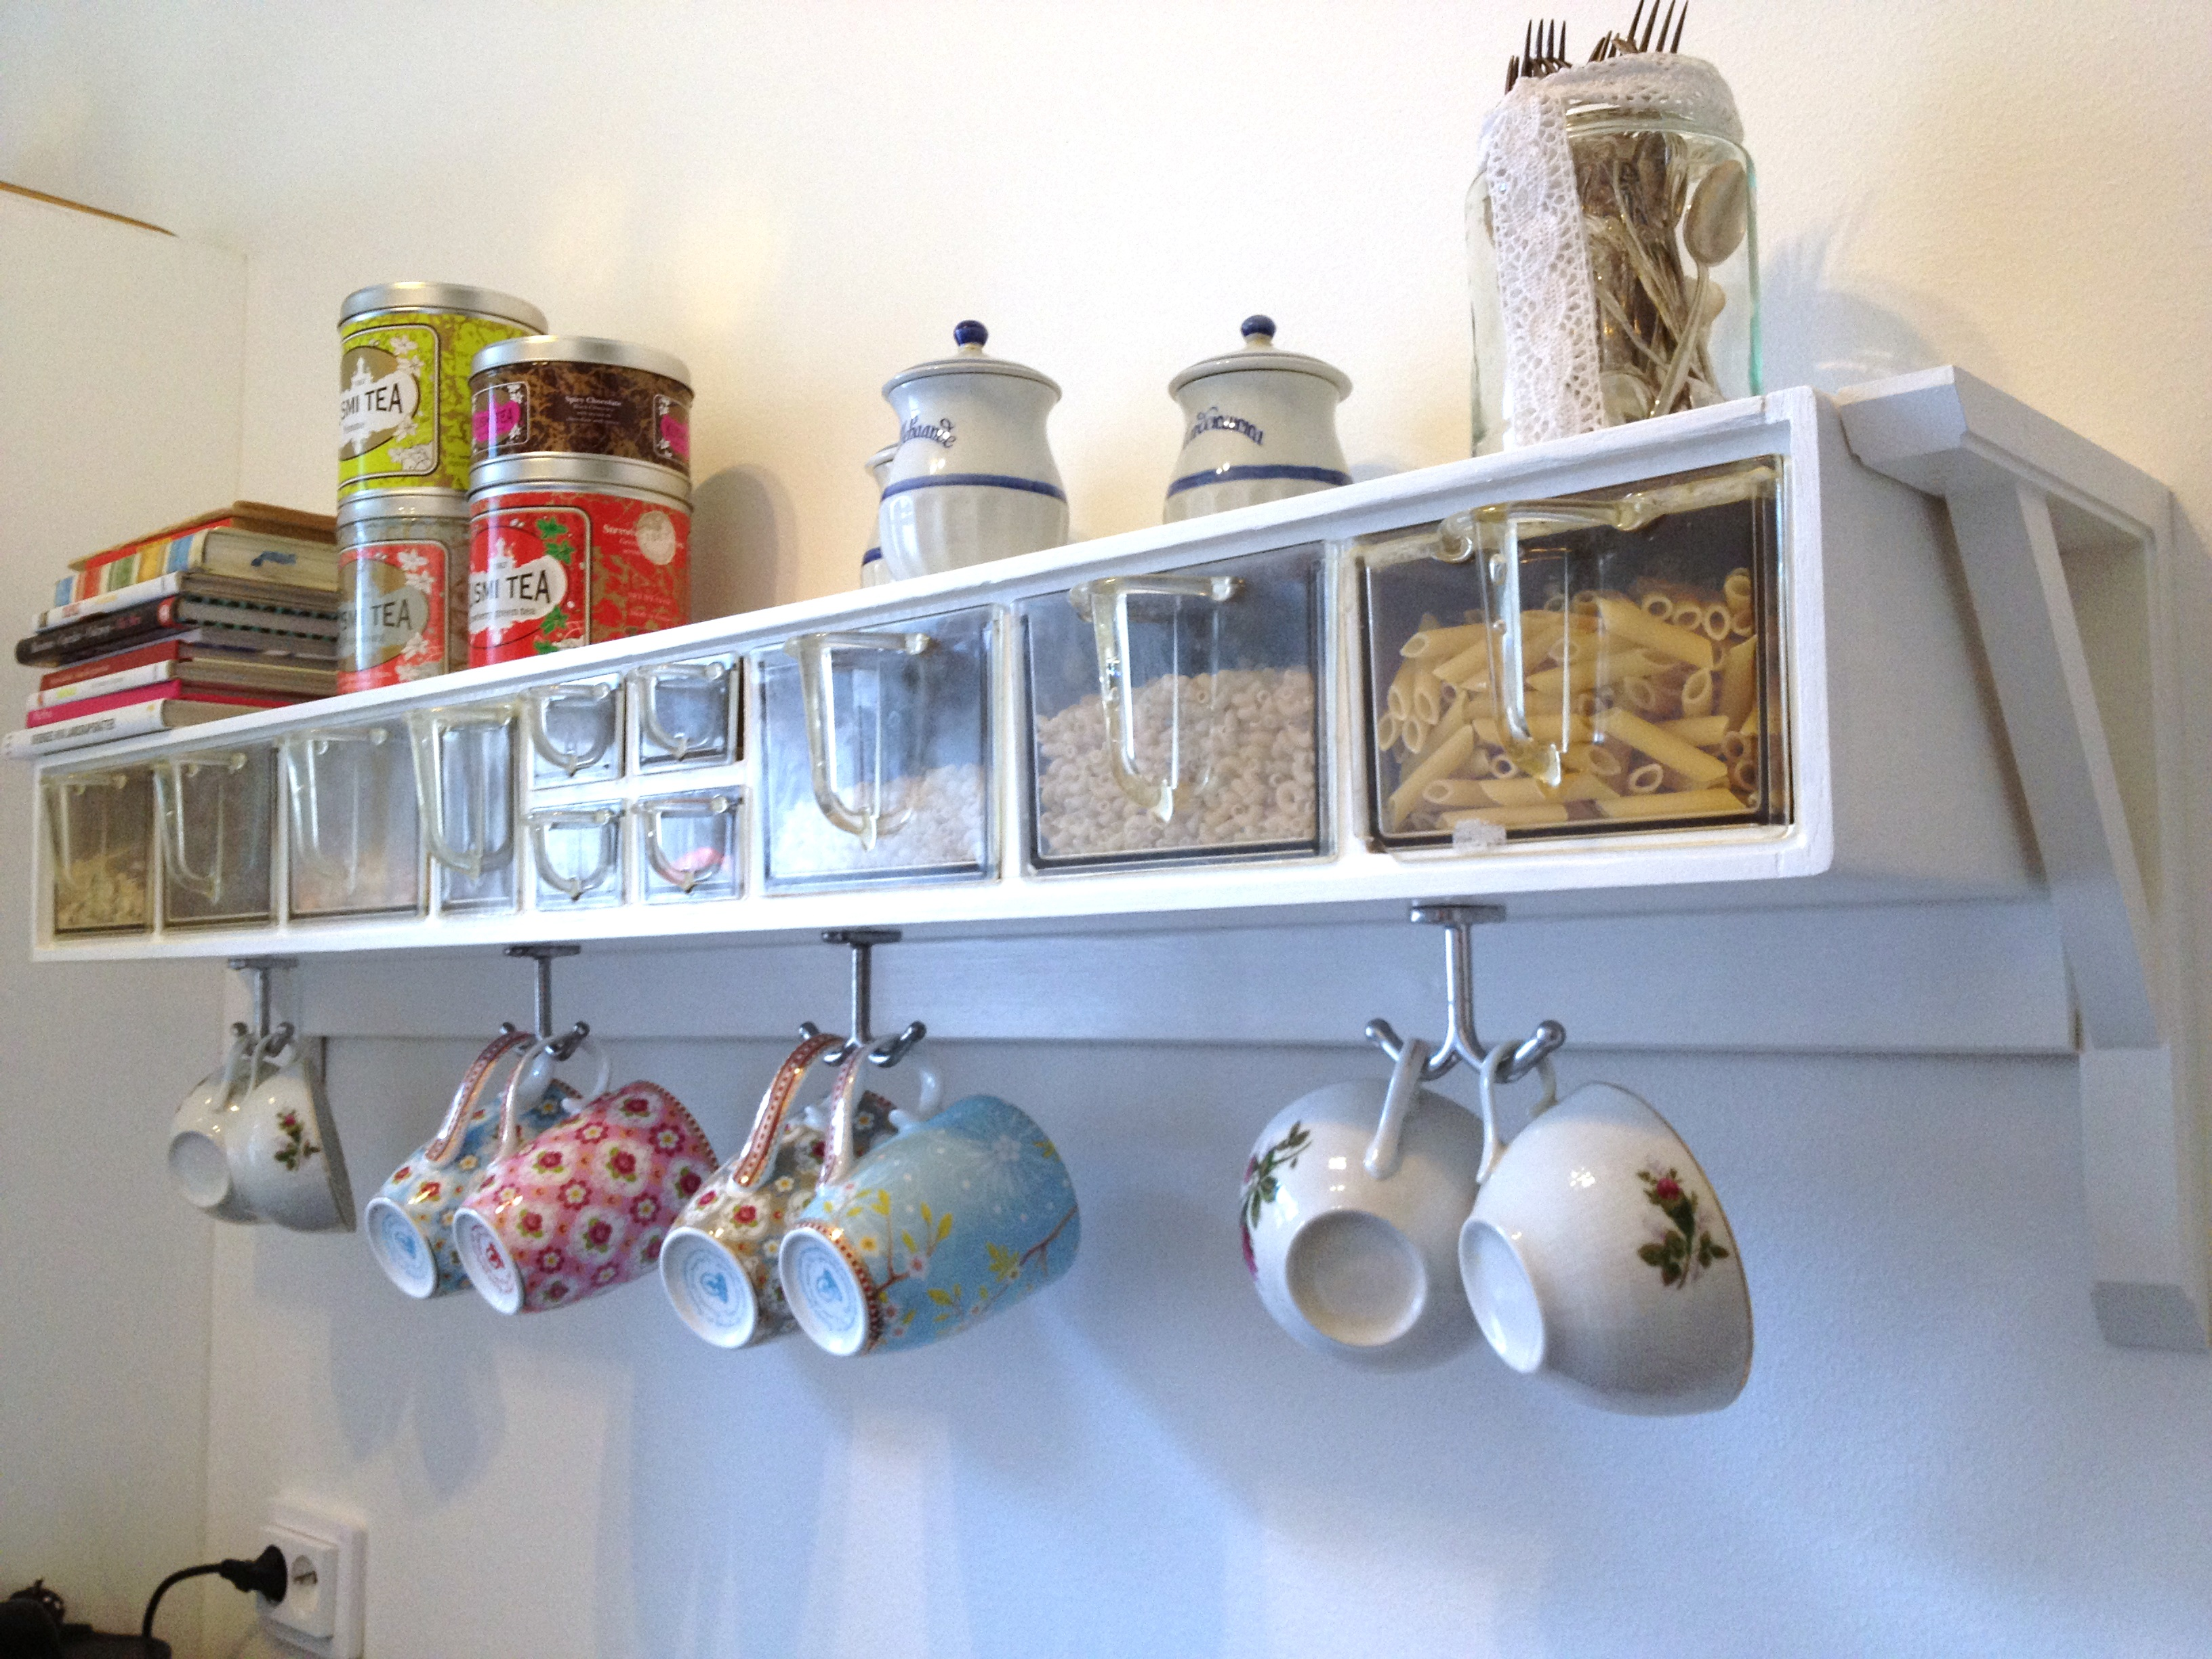 Beau Reuse Retro Kitchen Shelf